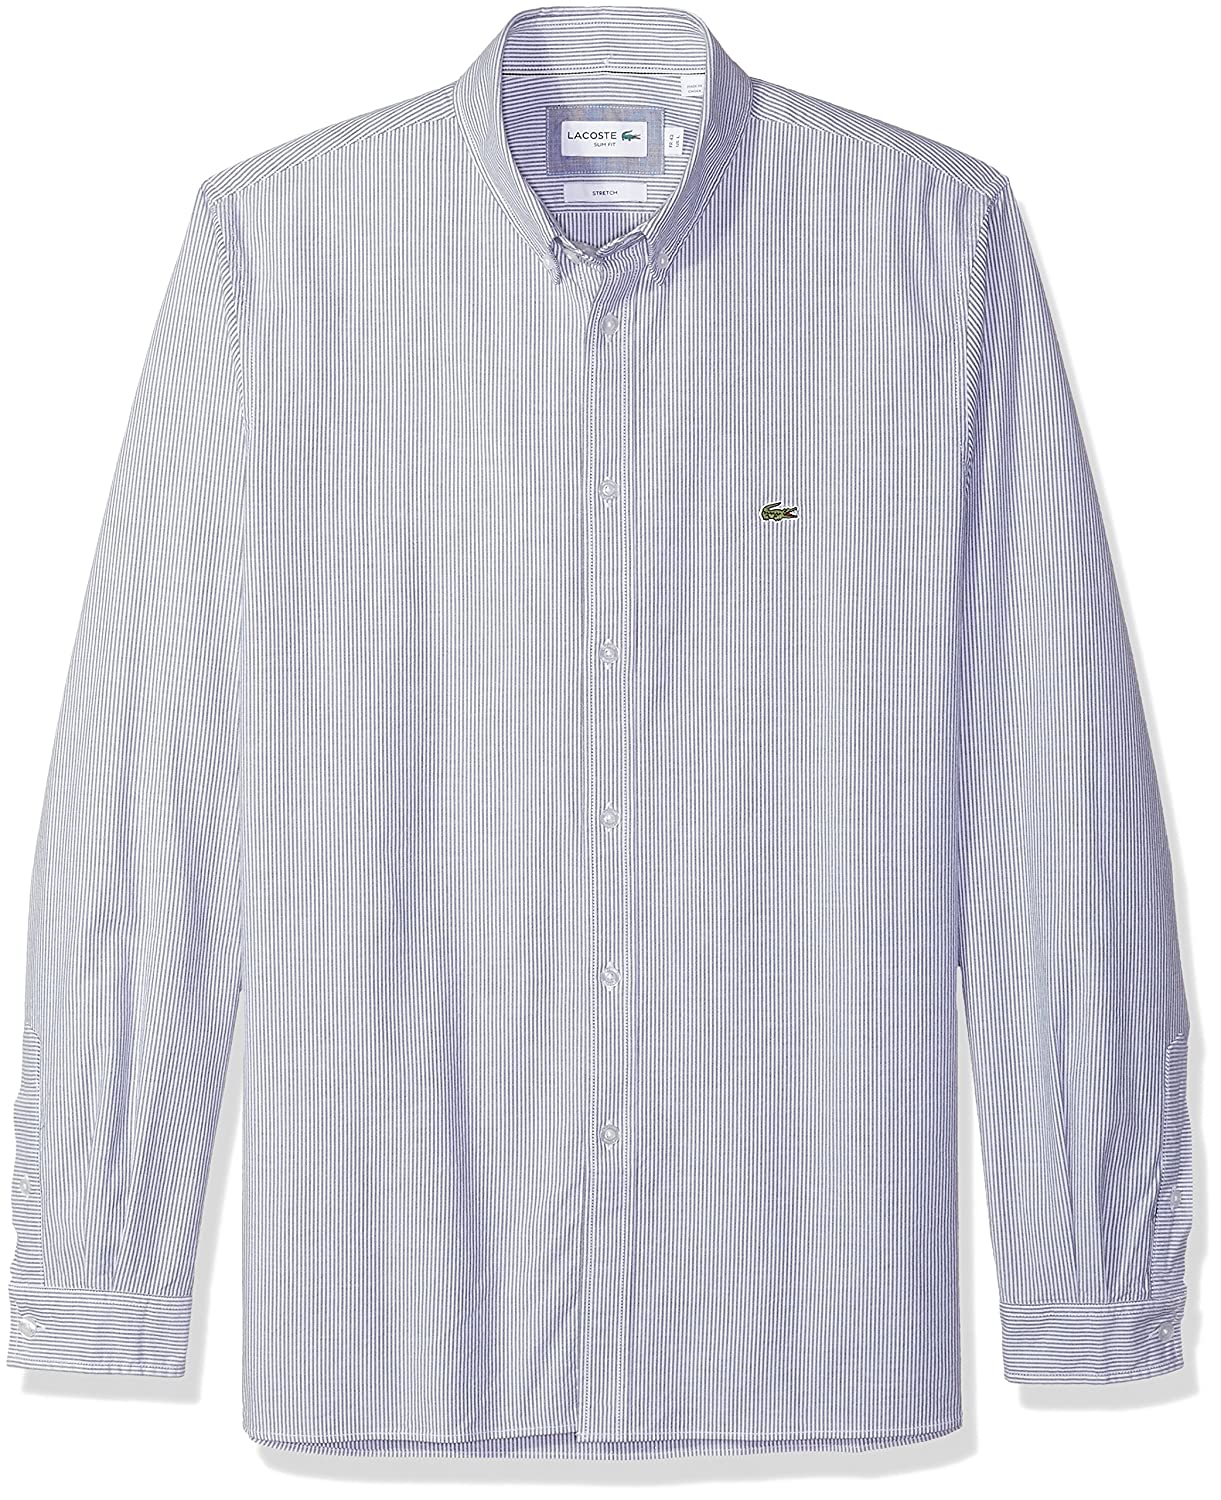 2357fe51 Lacoste Men's Long Sleeve Oxford Stretch Stripe Collar Slim Woven Shirt,  CH5022, Navy Blue, Small at Amazon Men's Clothing store: